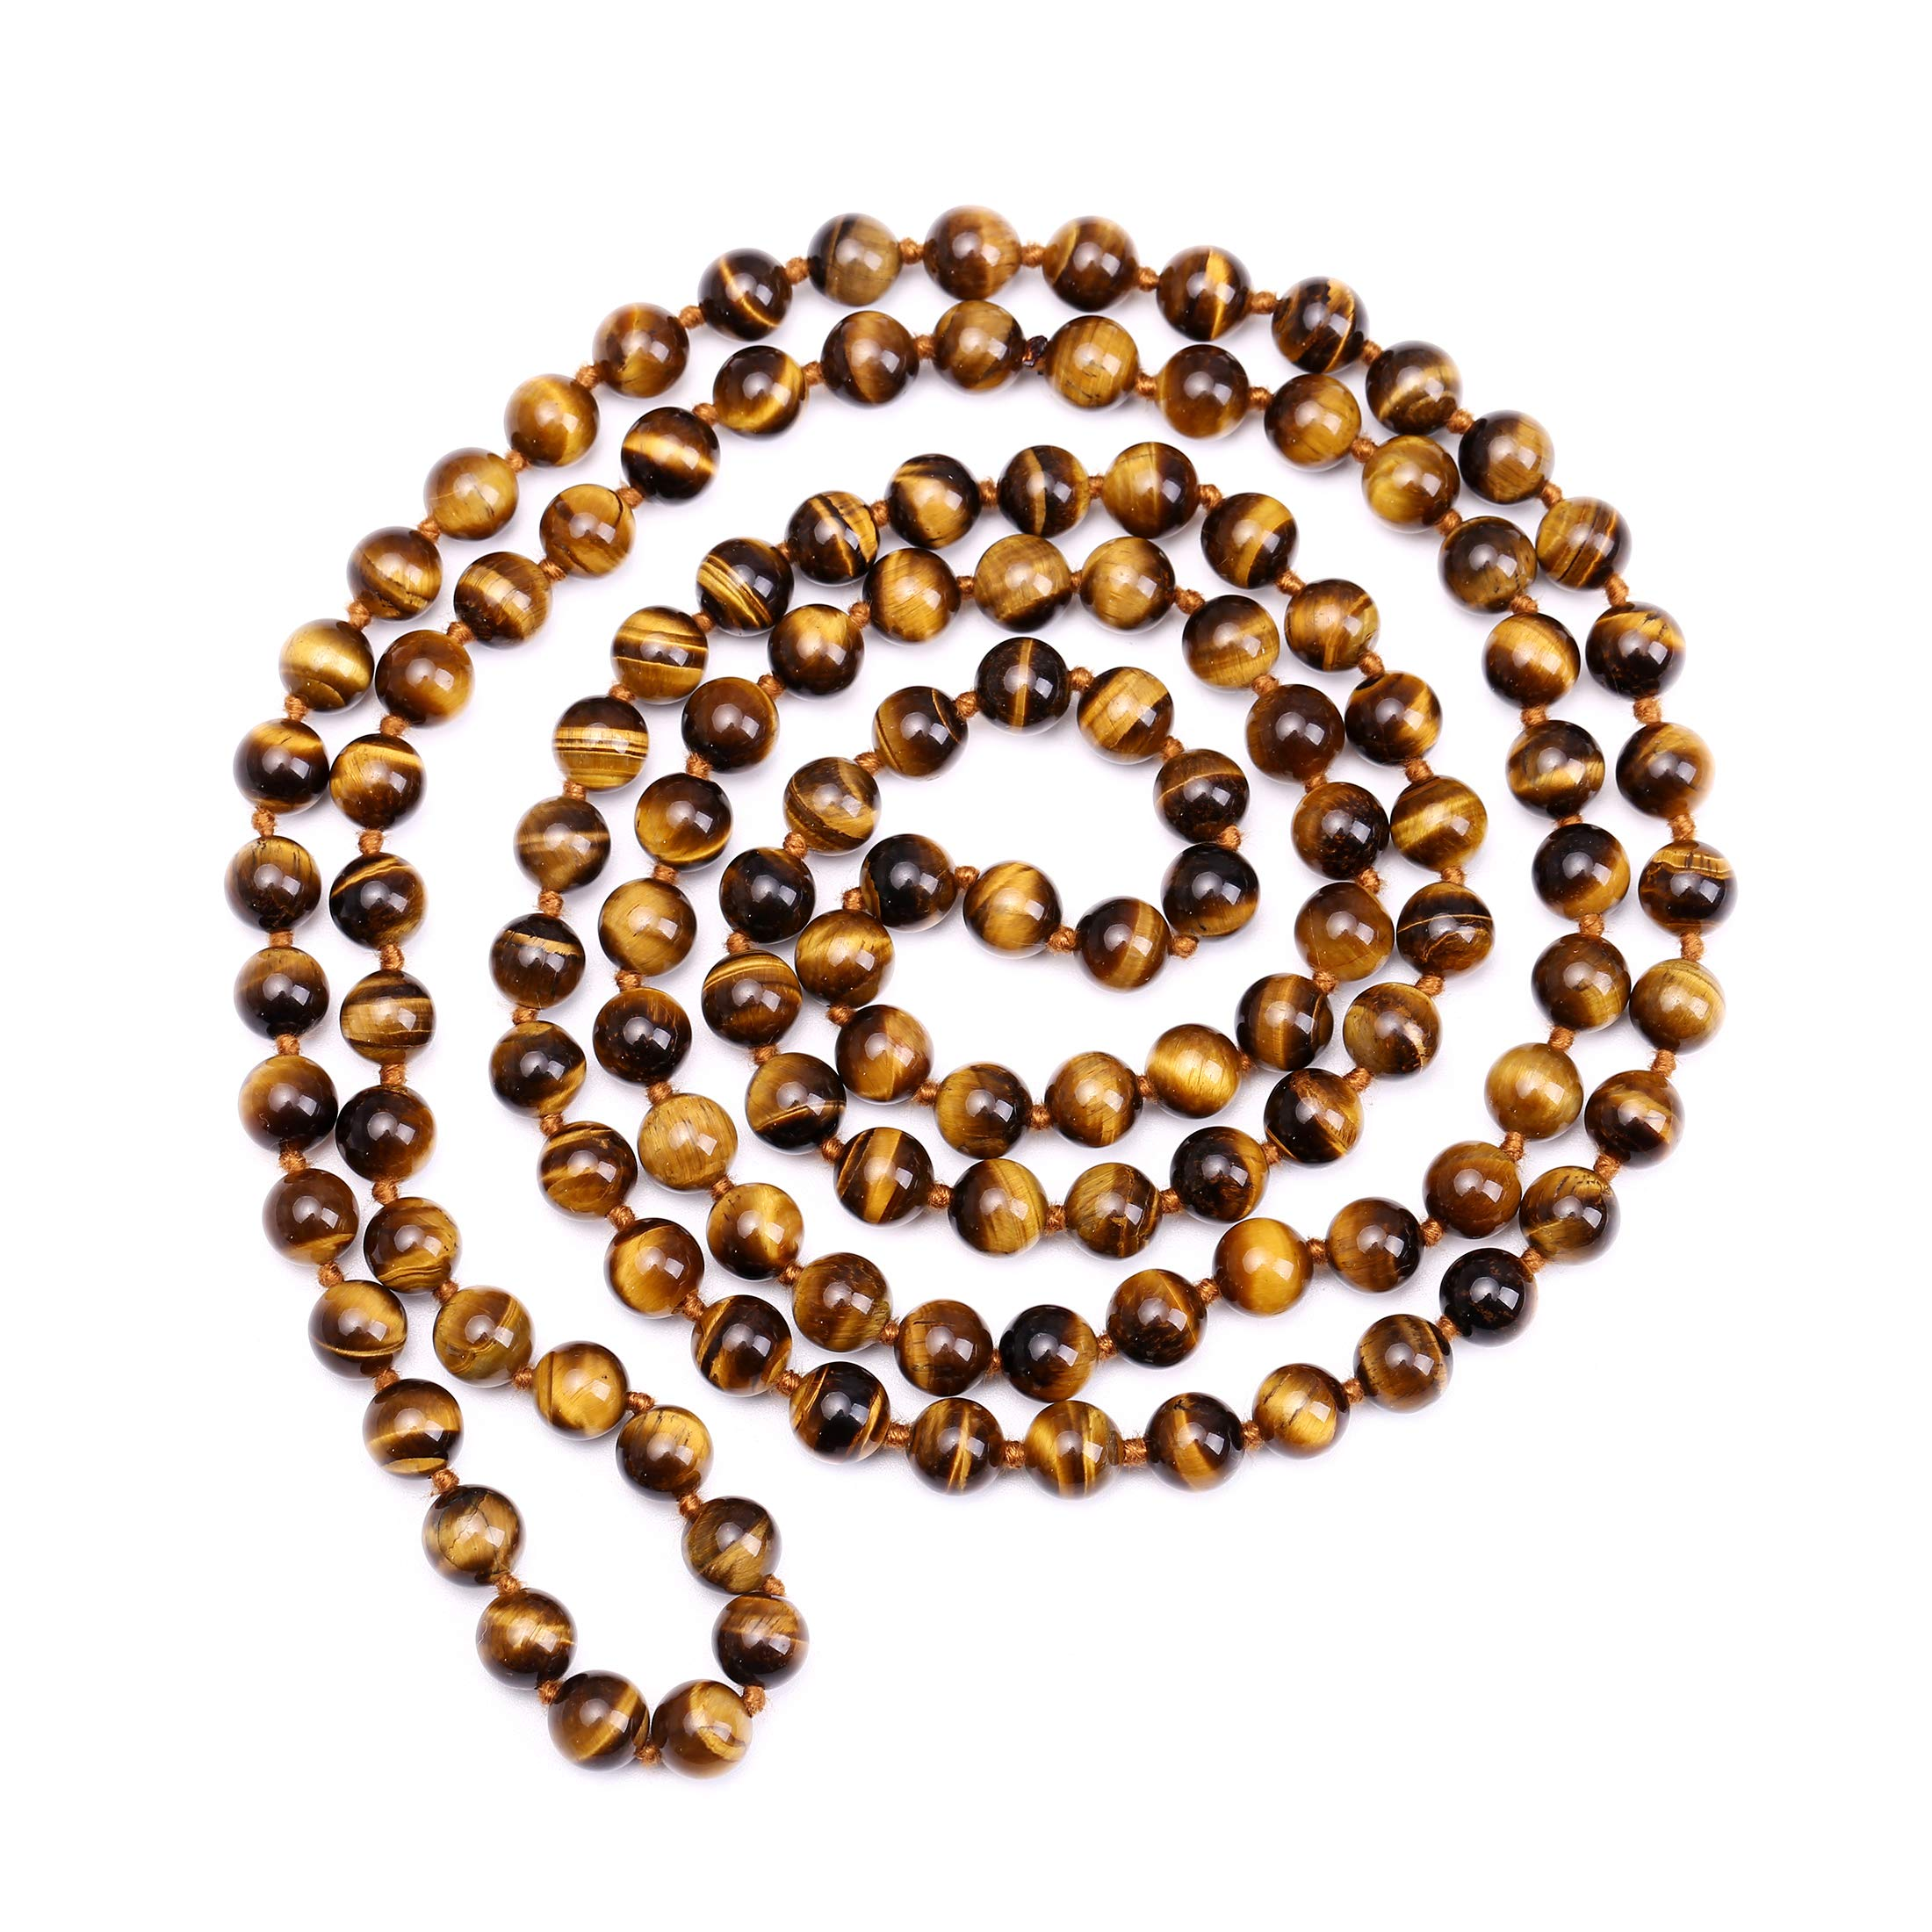 Tiger Eye Long Beaded Necklace Natural Stone Jewelry for Women Men Gold Wrap Bracelet